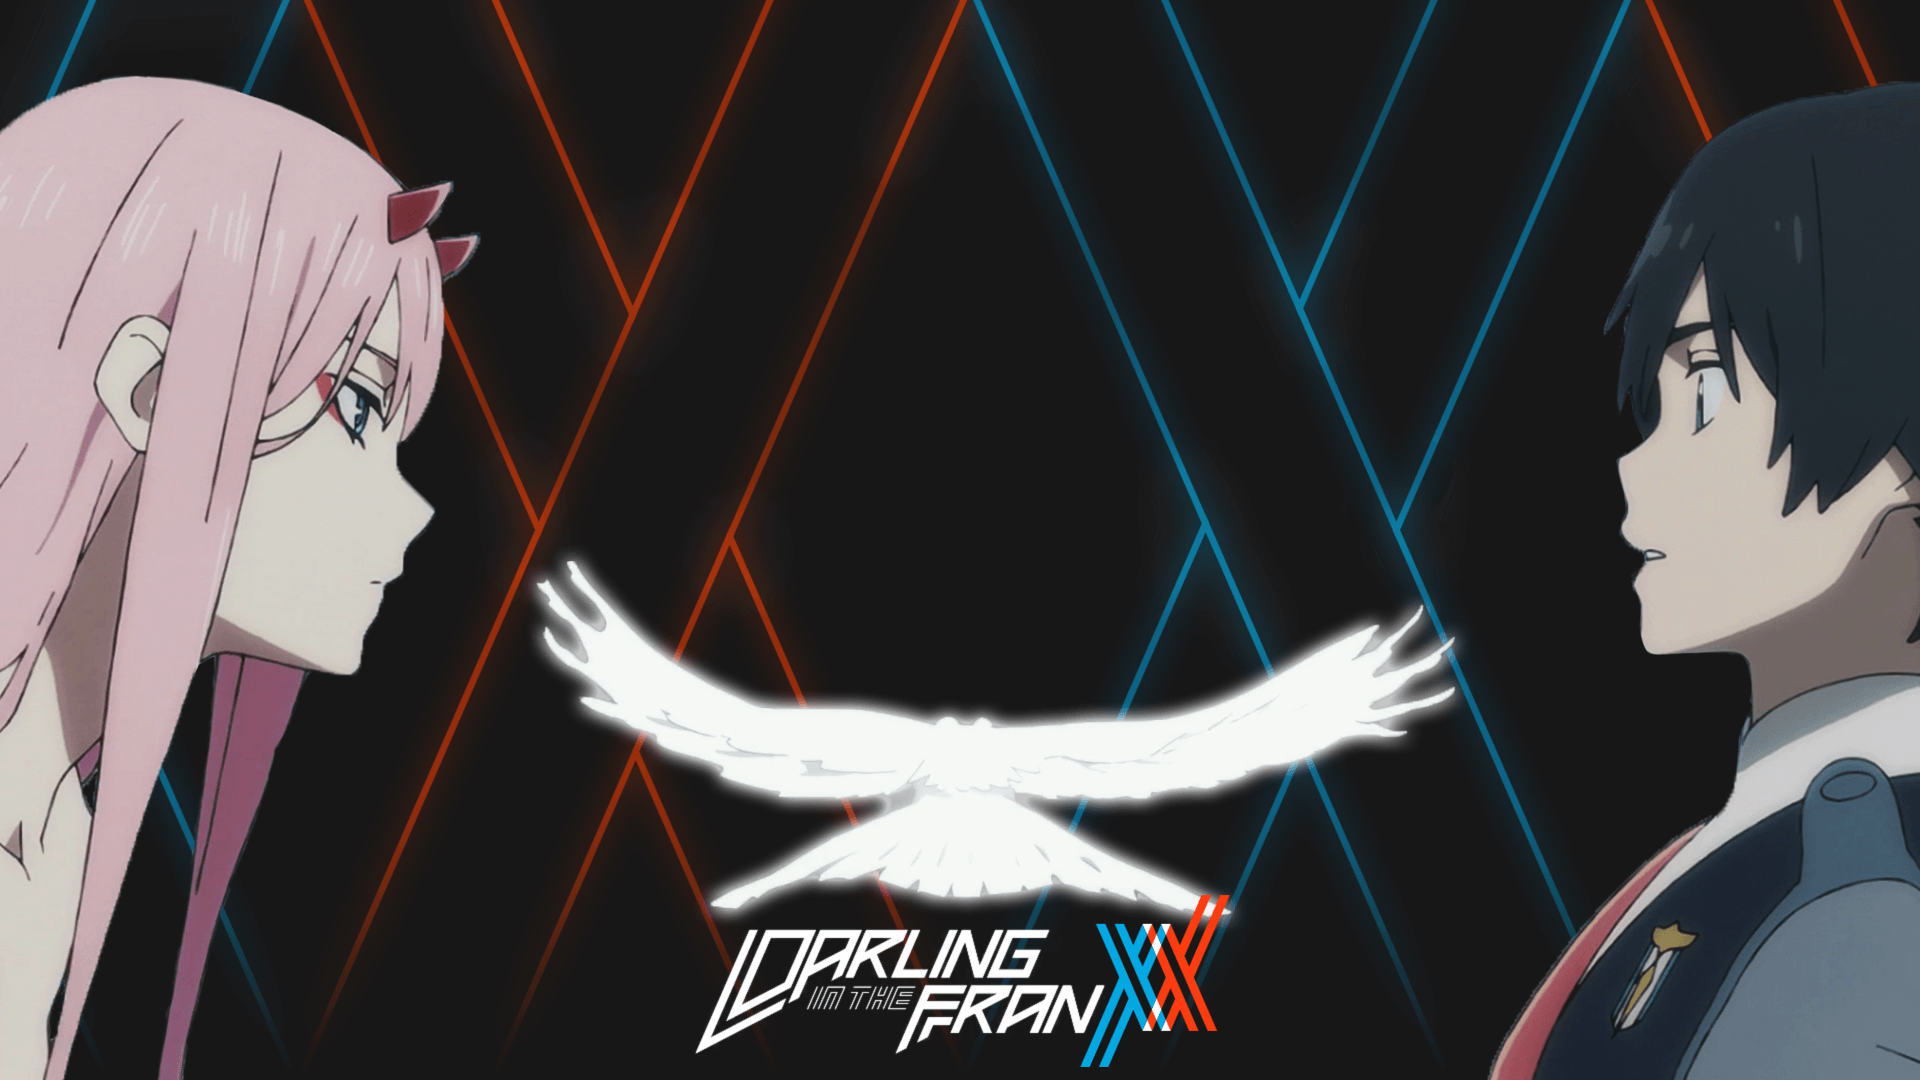 Darling in the FranXX wallpapers